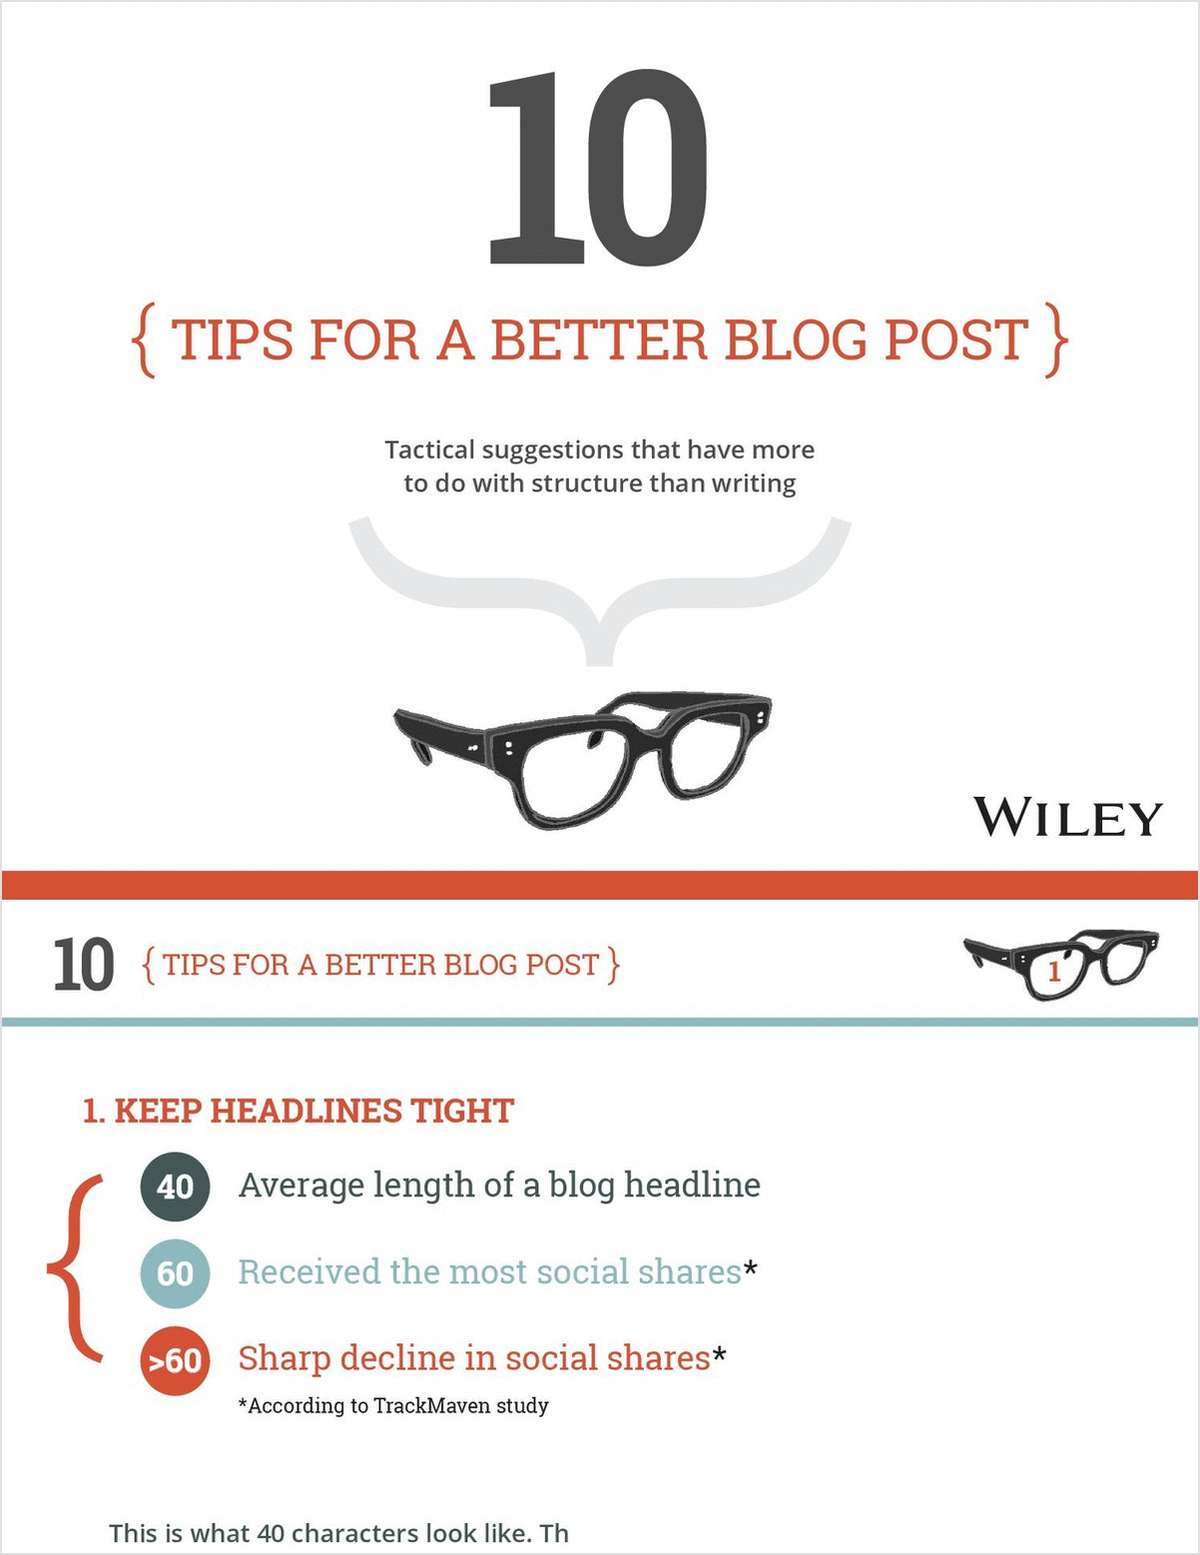 10 Tips for a Better Blog Post